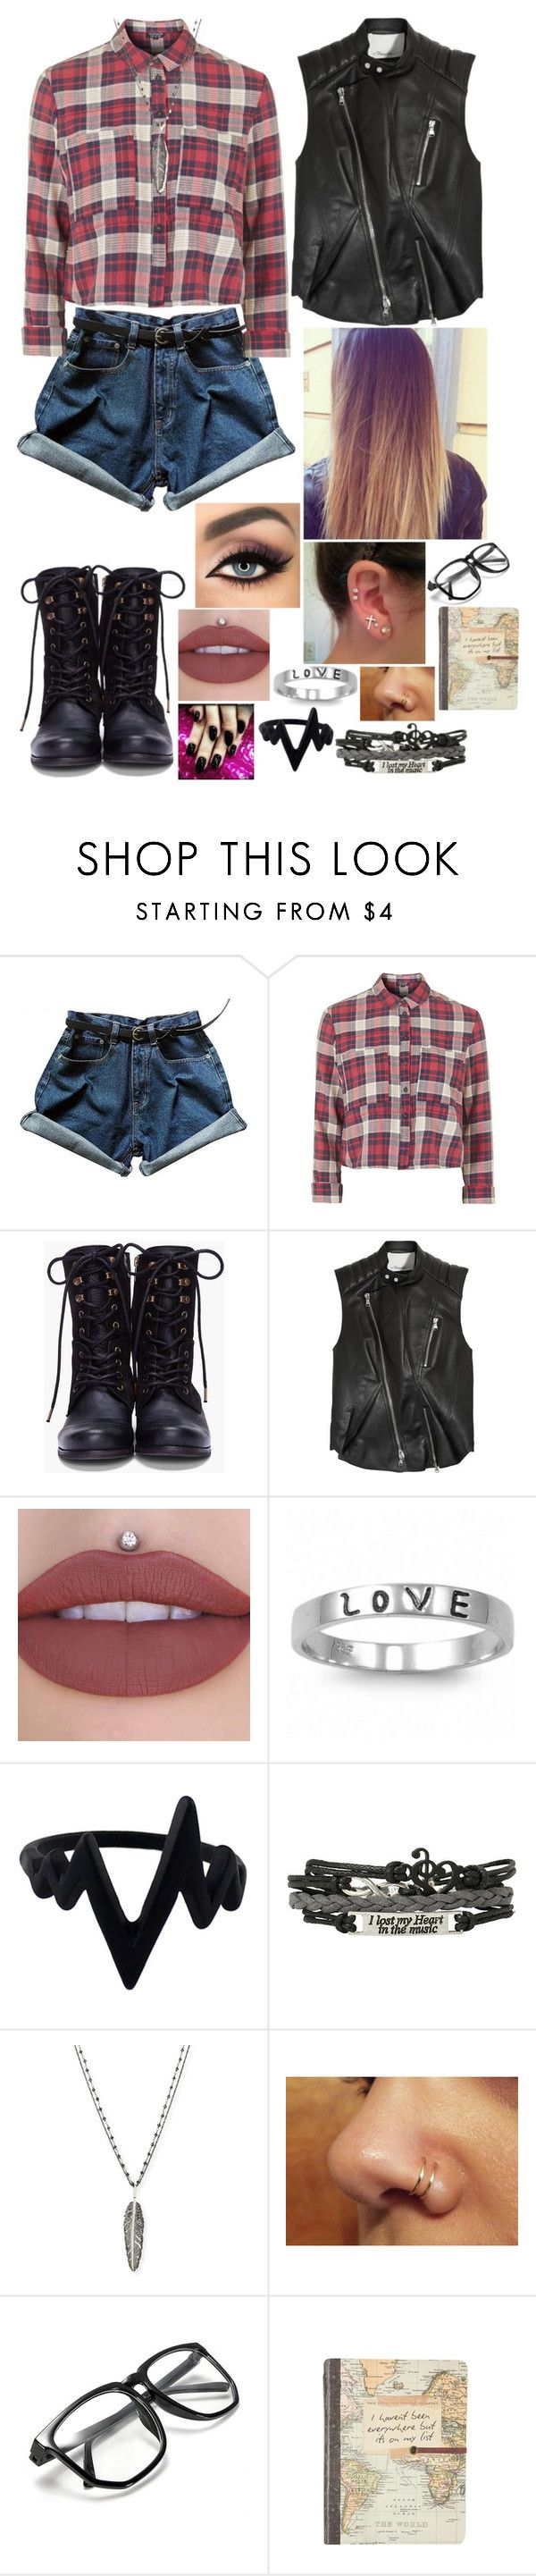 """""""Untitled #2918 - Fight Song by Rachel Platten Song Inspired Outfit"""" by nicolerunnels ❤ liked on Polyvore featuring Topshop, Diesel, 3.1 Phillip Lim, tarte, Fantasy Jewelry Box and Michael Aram"""